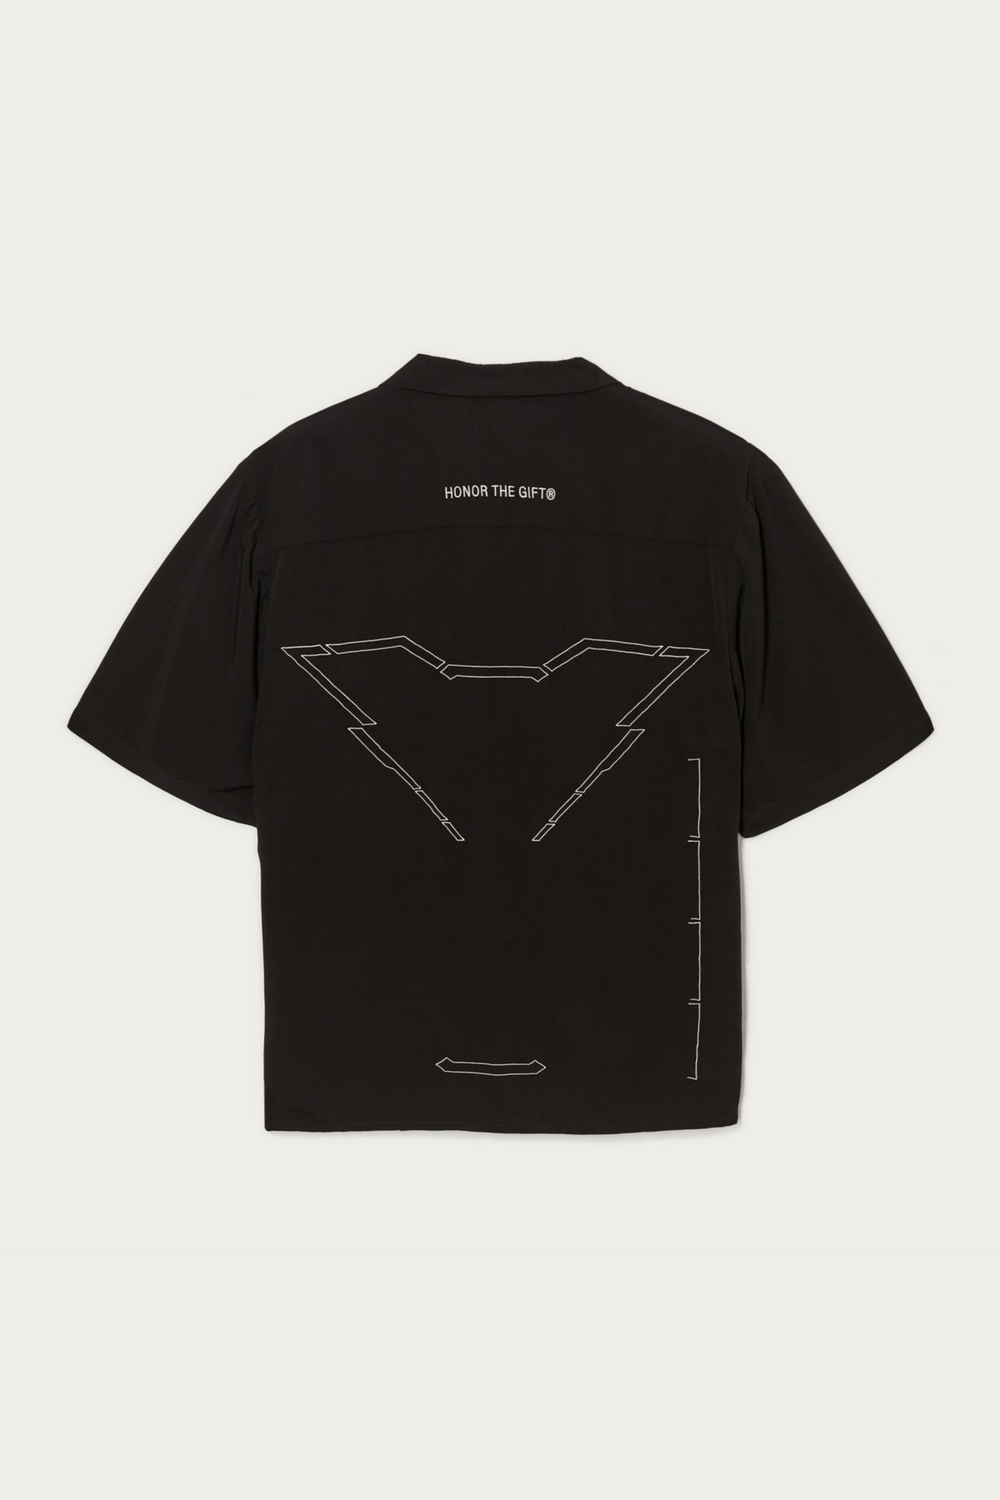 products/squadron_shirt_2.png